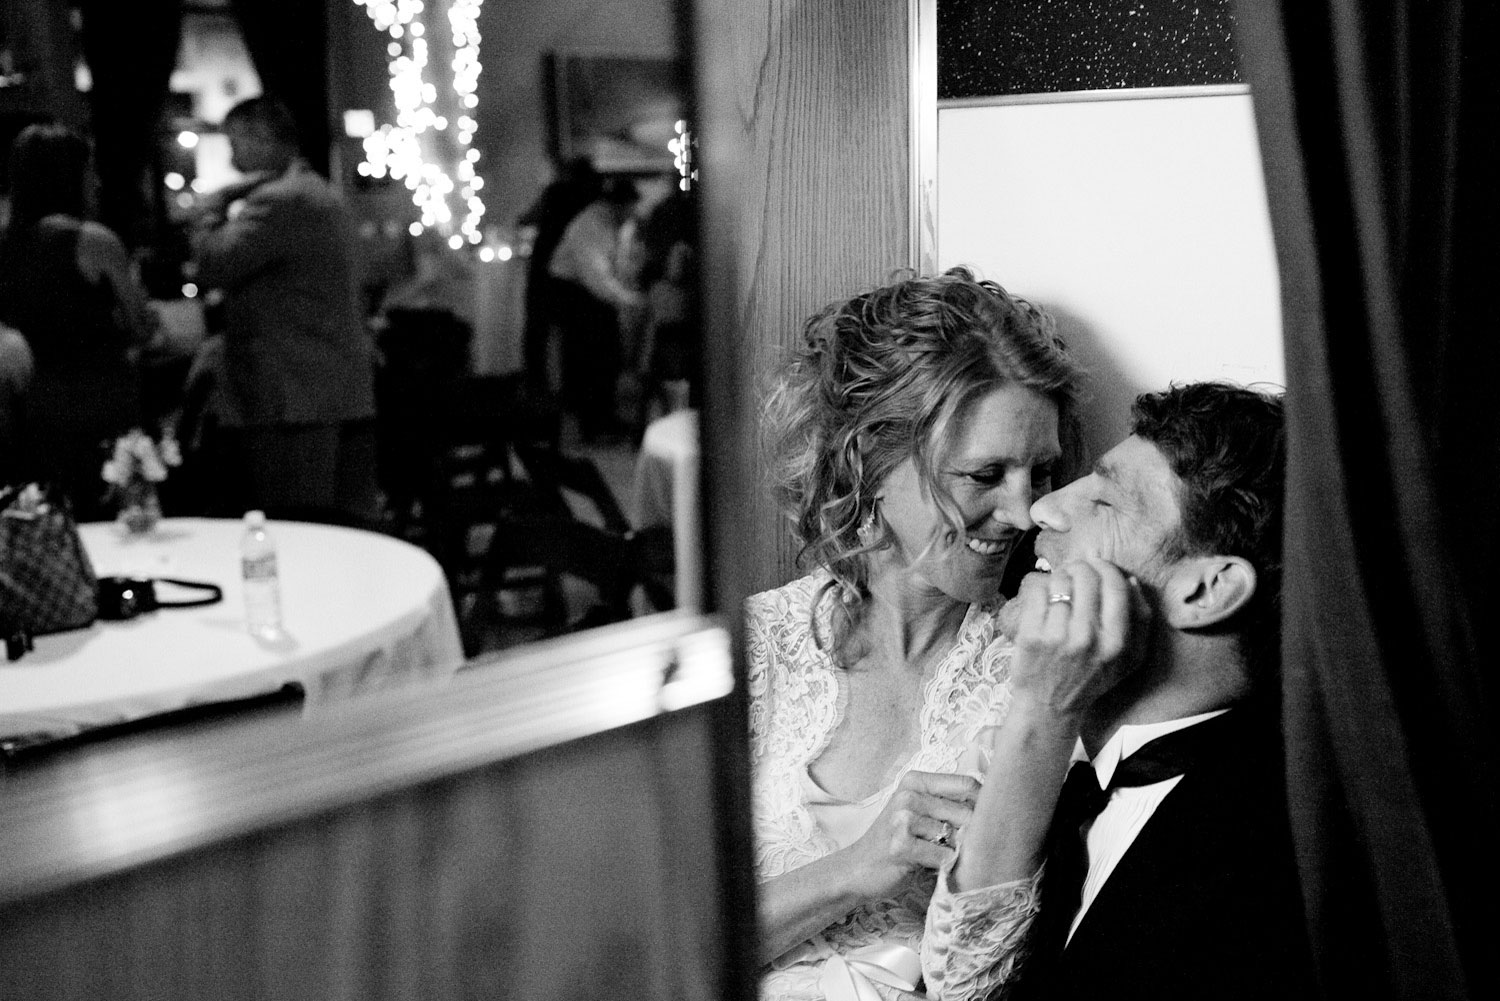 The Bride and Groom enjoy a moment in a photobooth inside the Linen Building, Boise, Idaho.